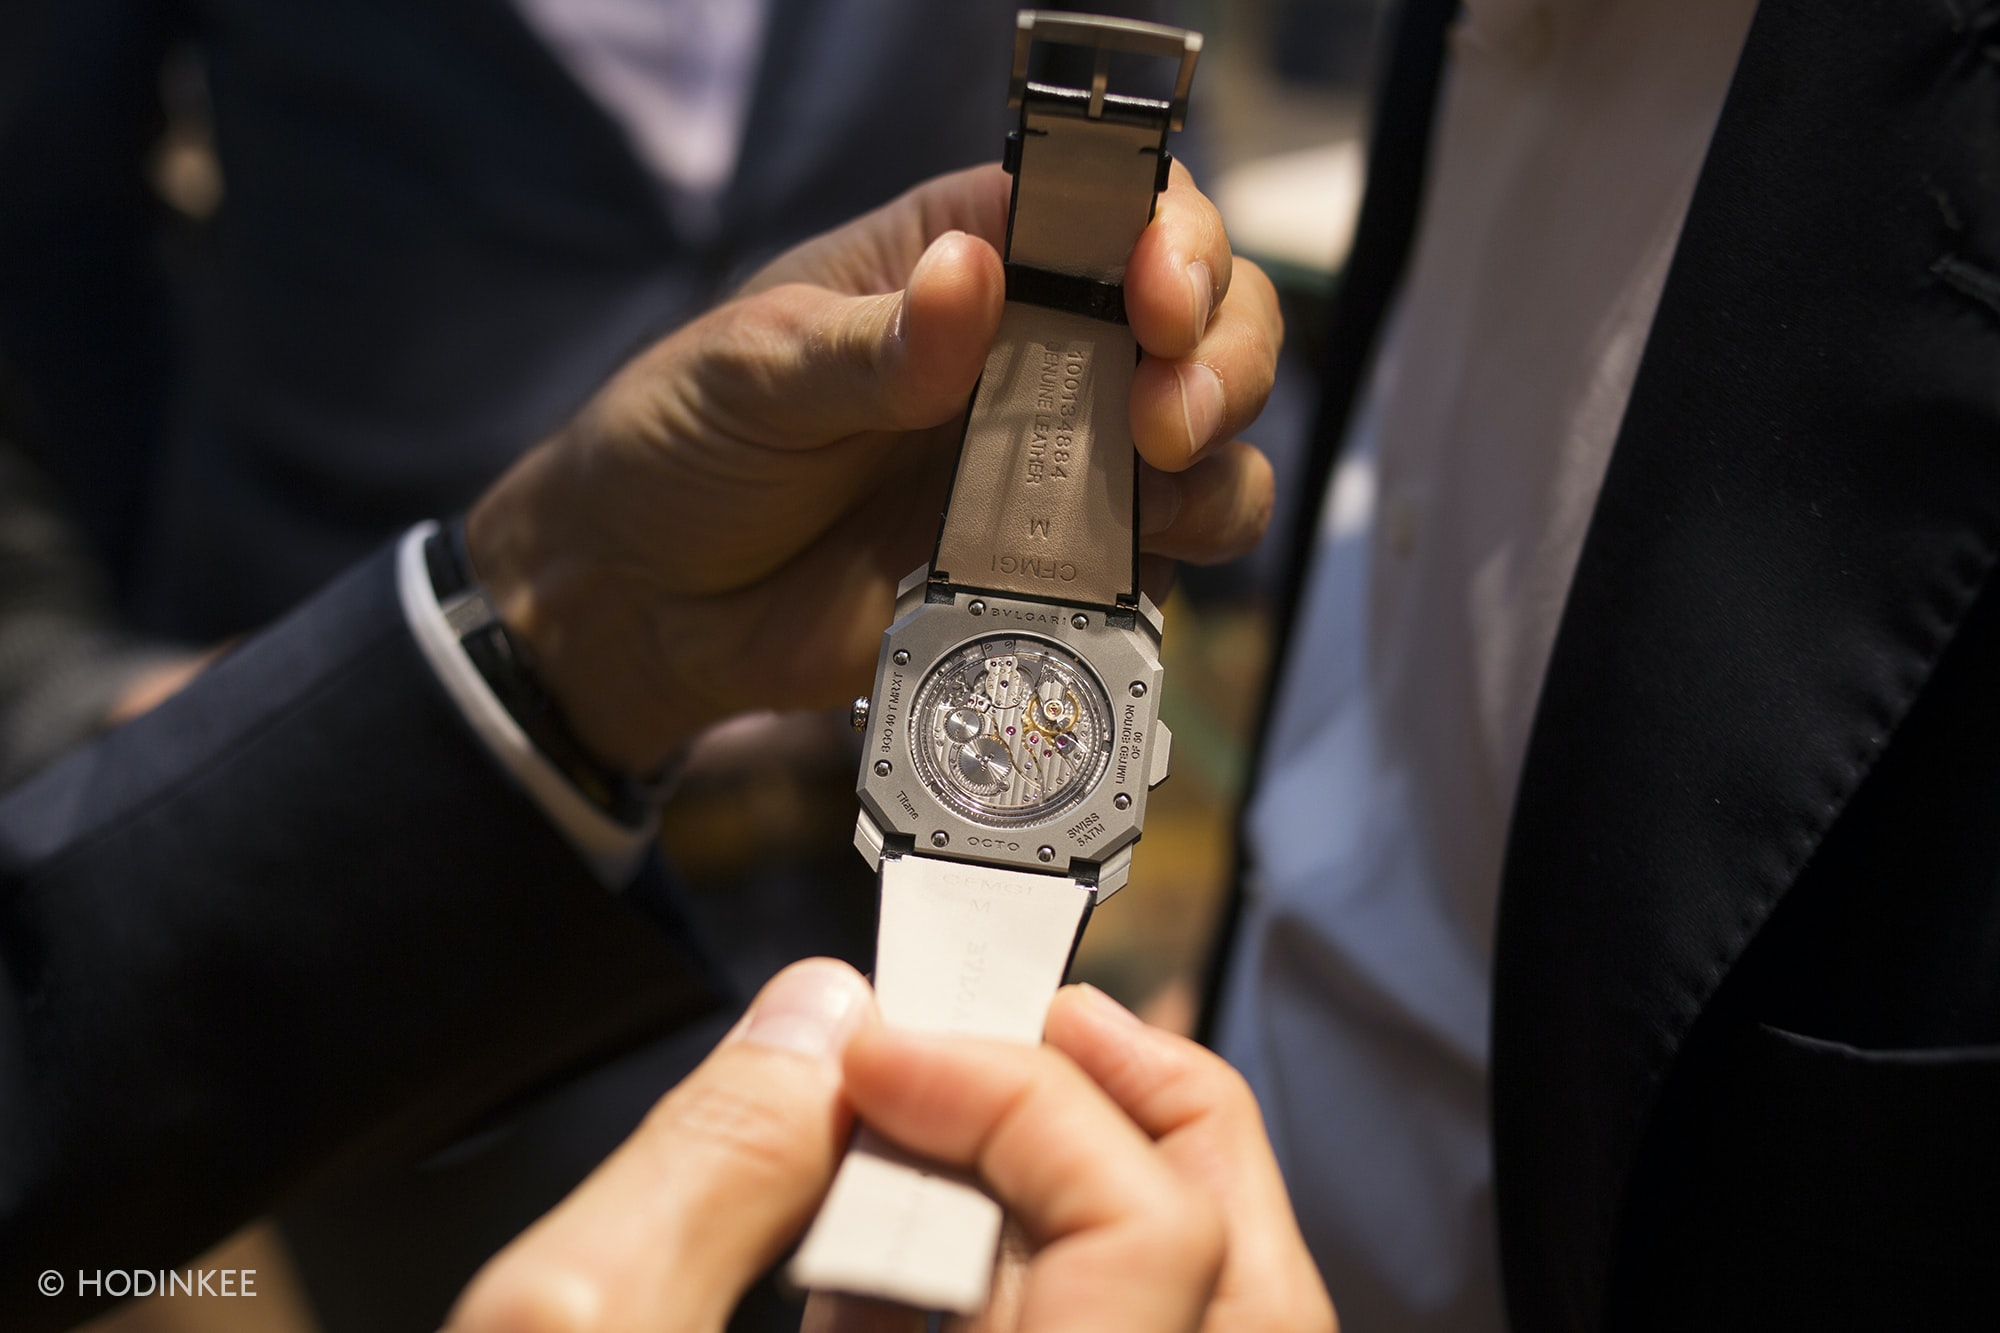 Photo Report: The Bulgari x HODINKEE Celebration Of The Octo Finissimo Minute Repeater In New York City Photo Report: The Bulgari x HODINKEE Celebration Of The Octo Finissimo Minute Repeater In New York City 20019918 copy